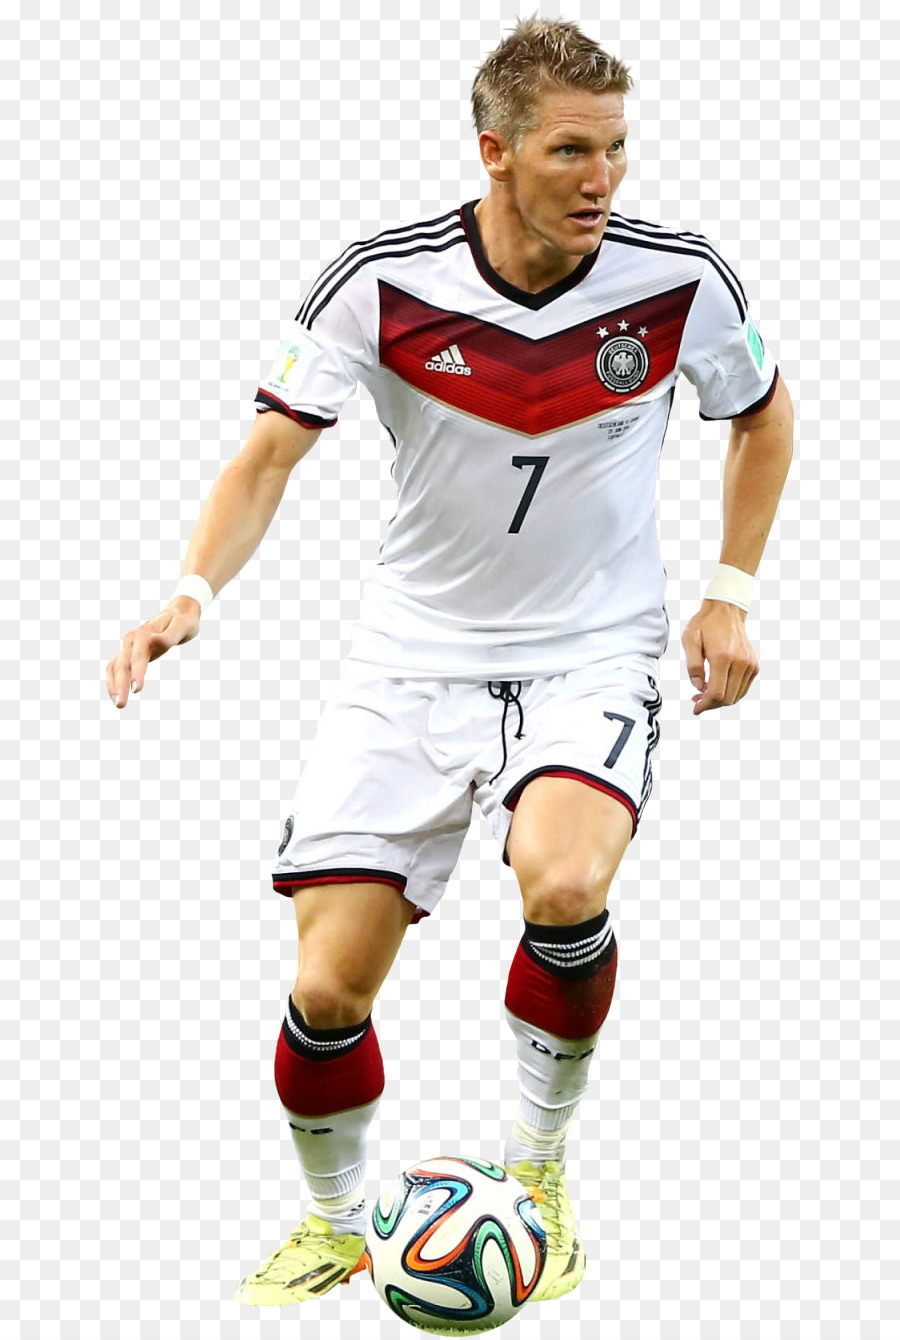 2014 FIFA World Cup Group G Bastian Schweinsteiger Germany national  football team Football player - germany png download - 703 1339 - Free  Transparent 2014 ... c01ac878c